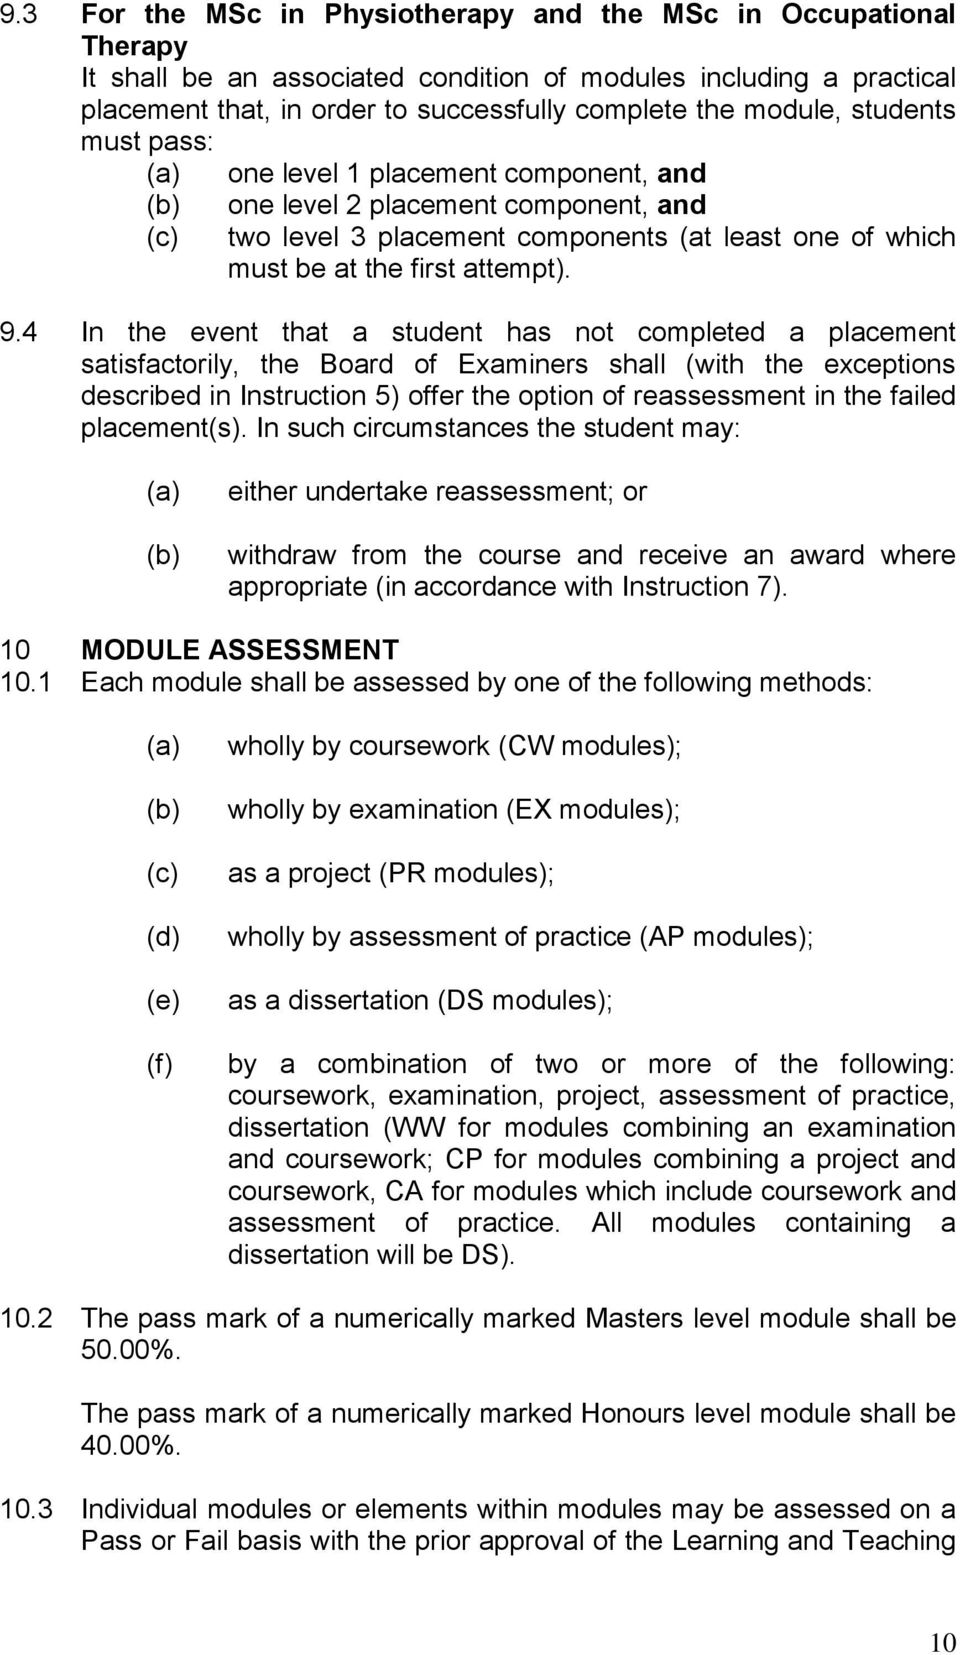 4 In the event that a student has not completed a placement satisfactorily, the Board of Examiners shall (with the exceptions described in Instruction 5) offer the option of reassessment in the